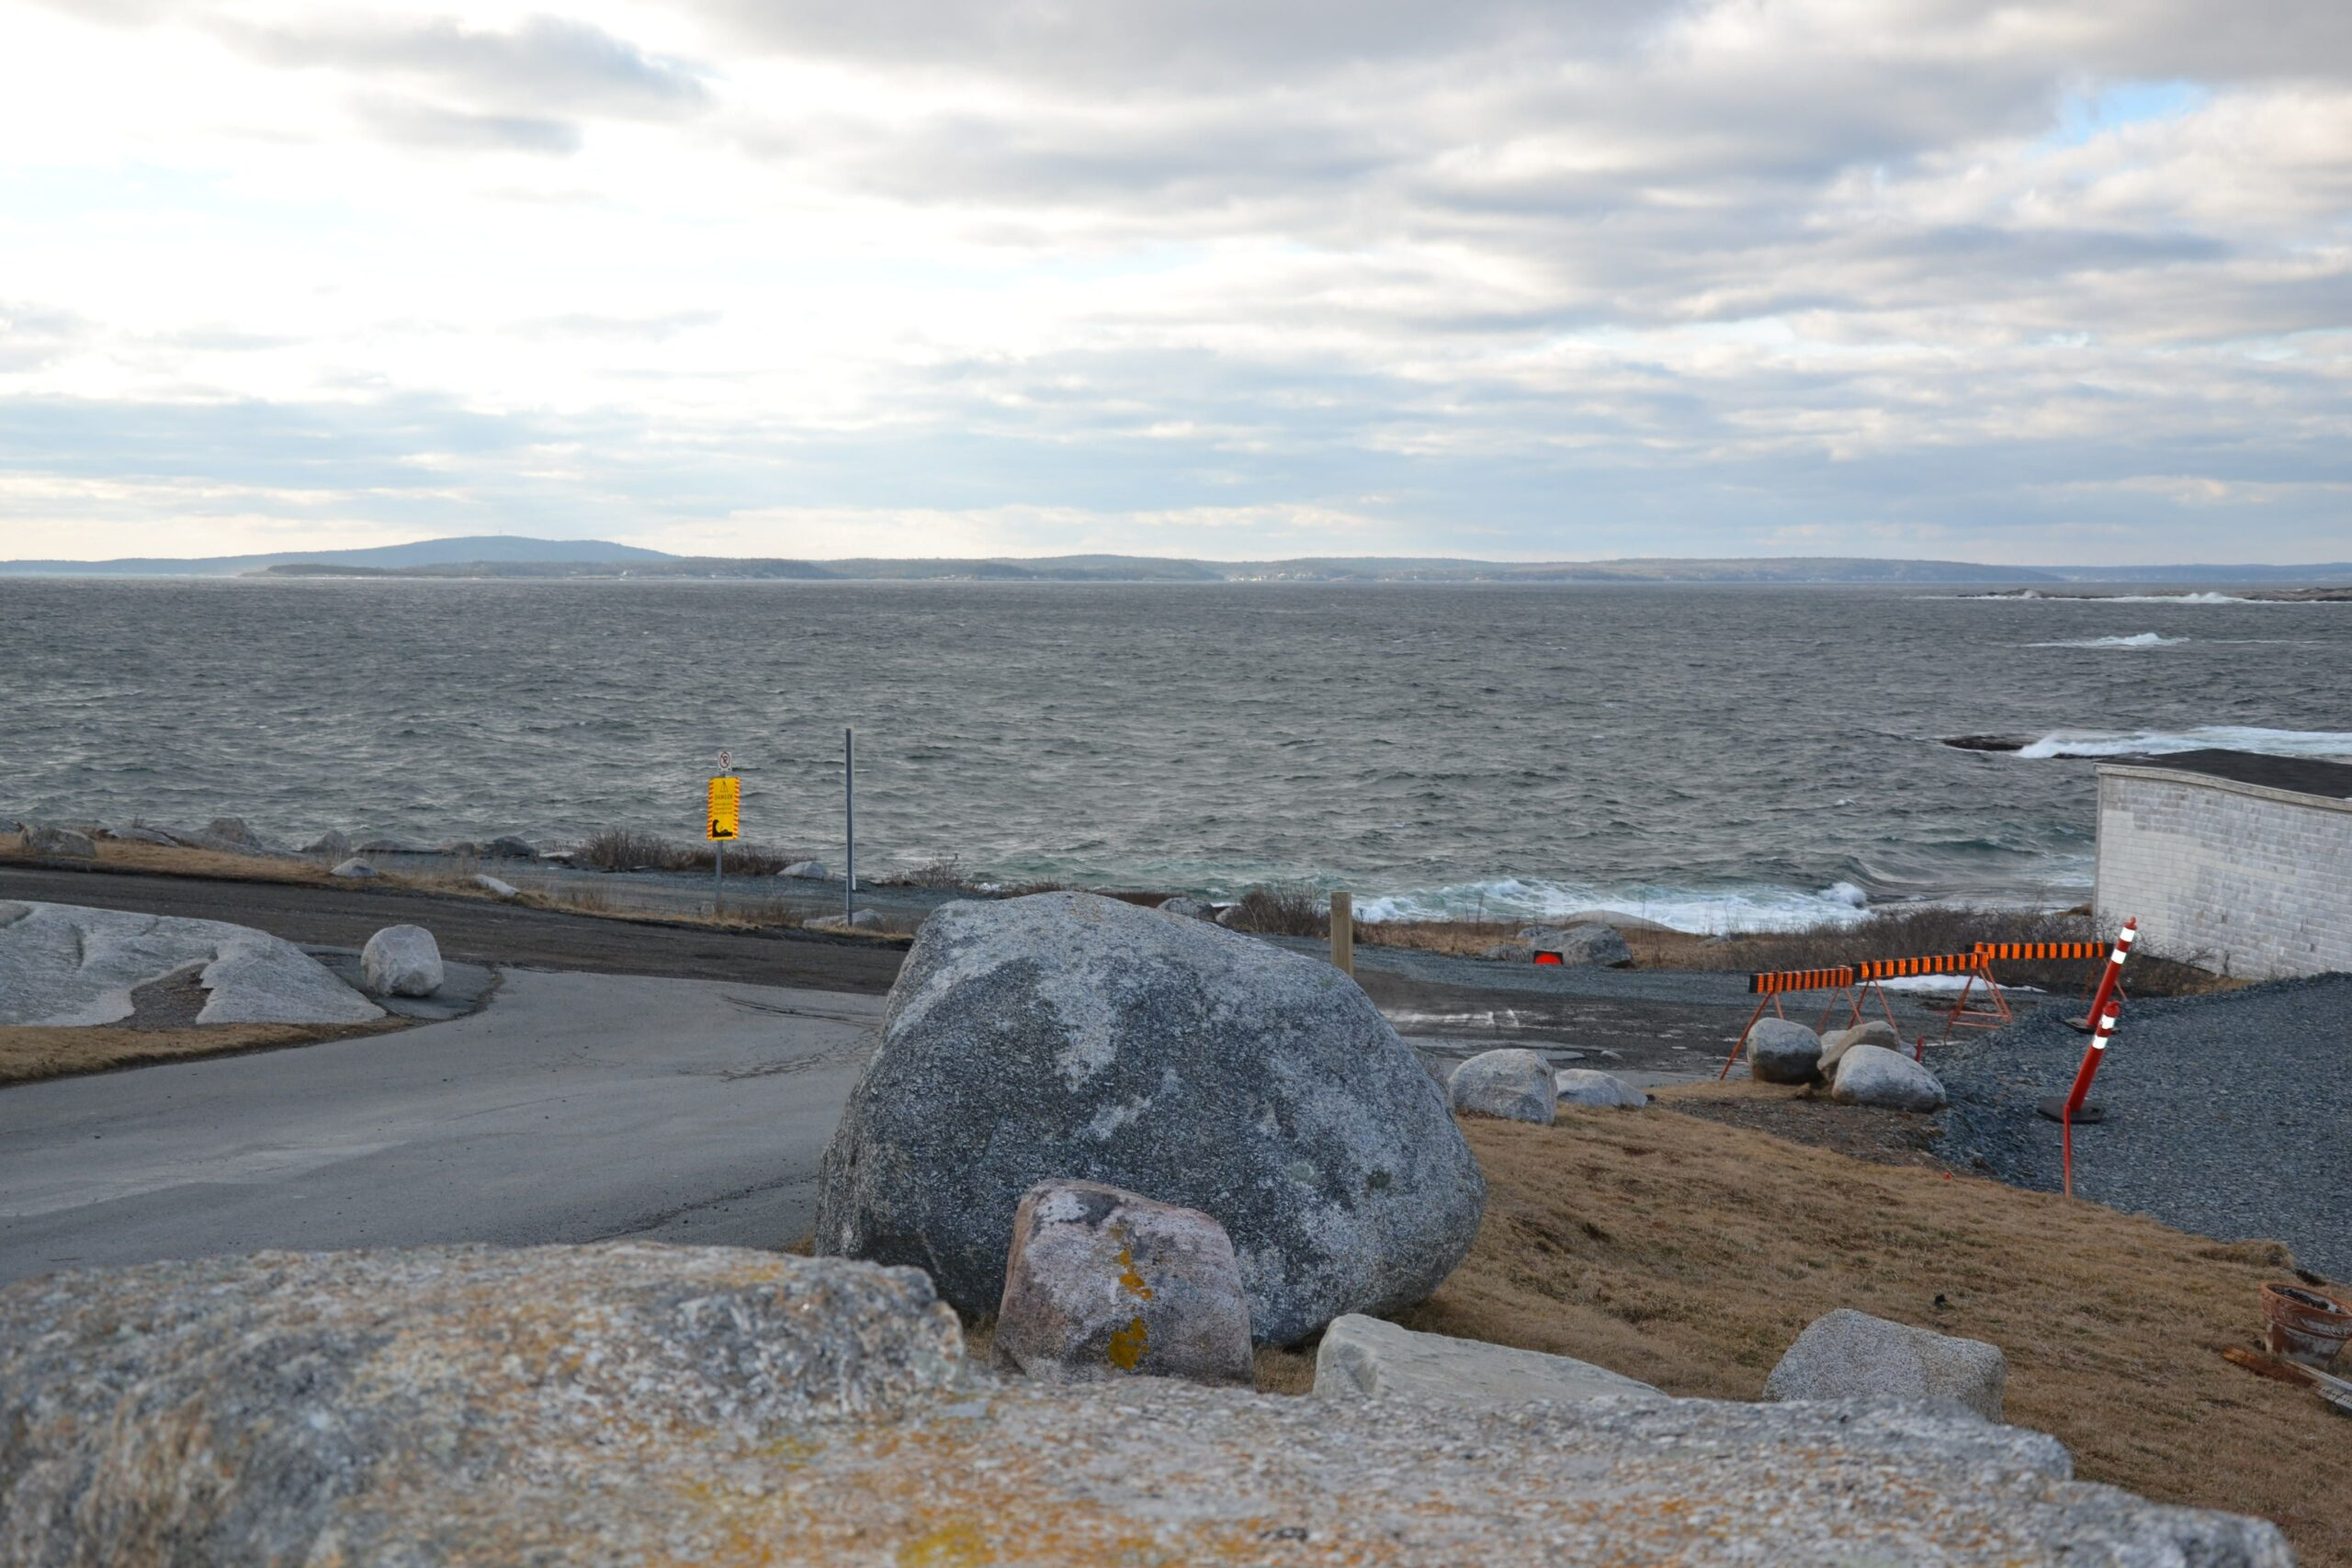 Rock in the foreground, ocean in background